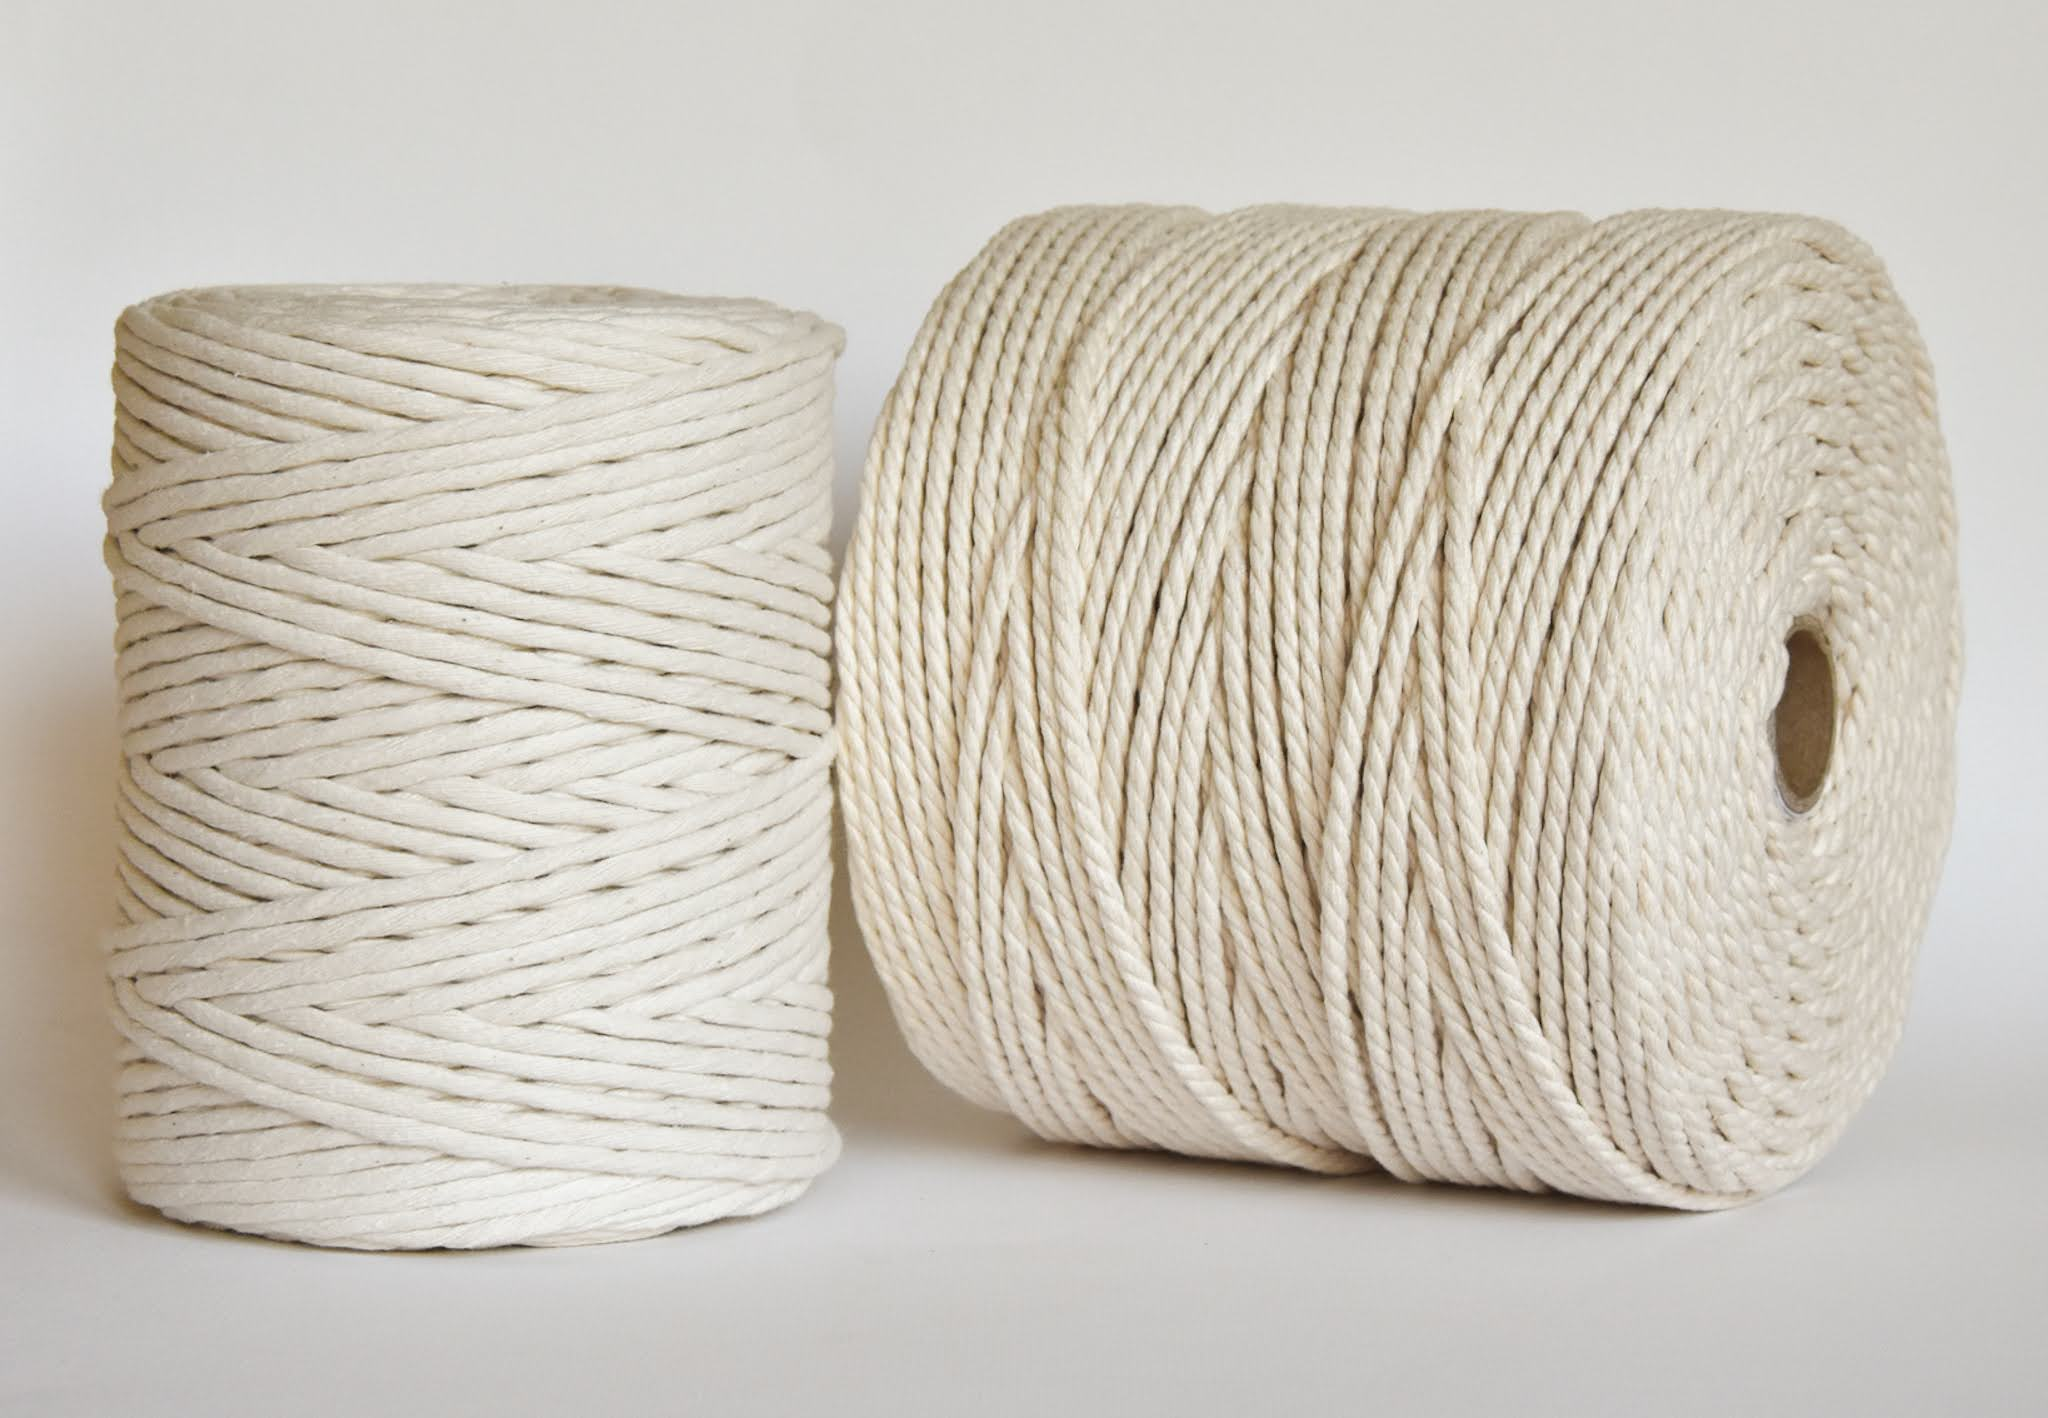 creadoodle 5 mm string and twisted rope cord natural raw recycled oekotec cotton, macrae, weaving, weven